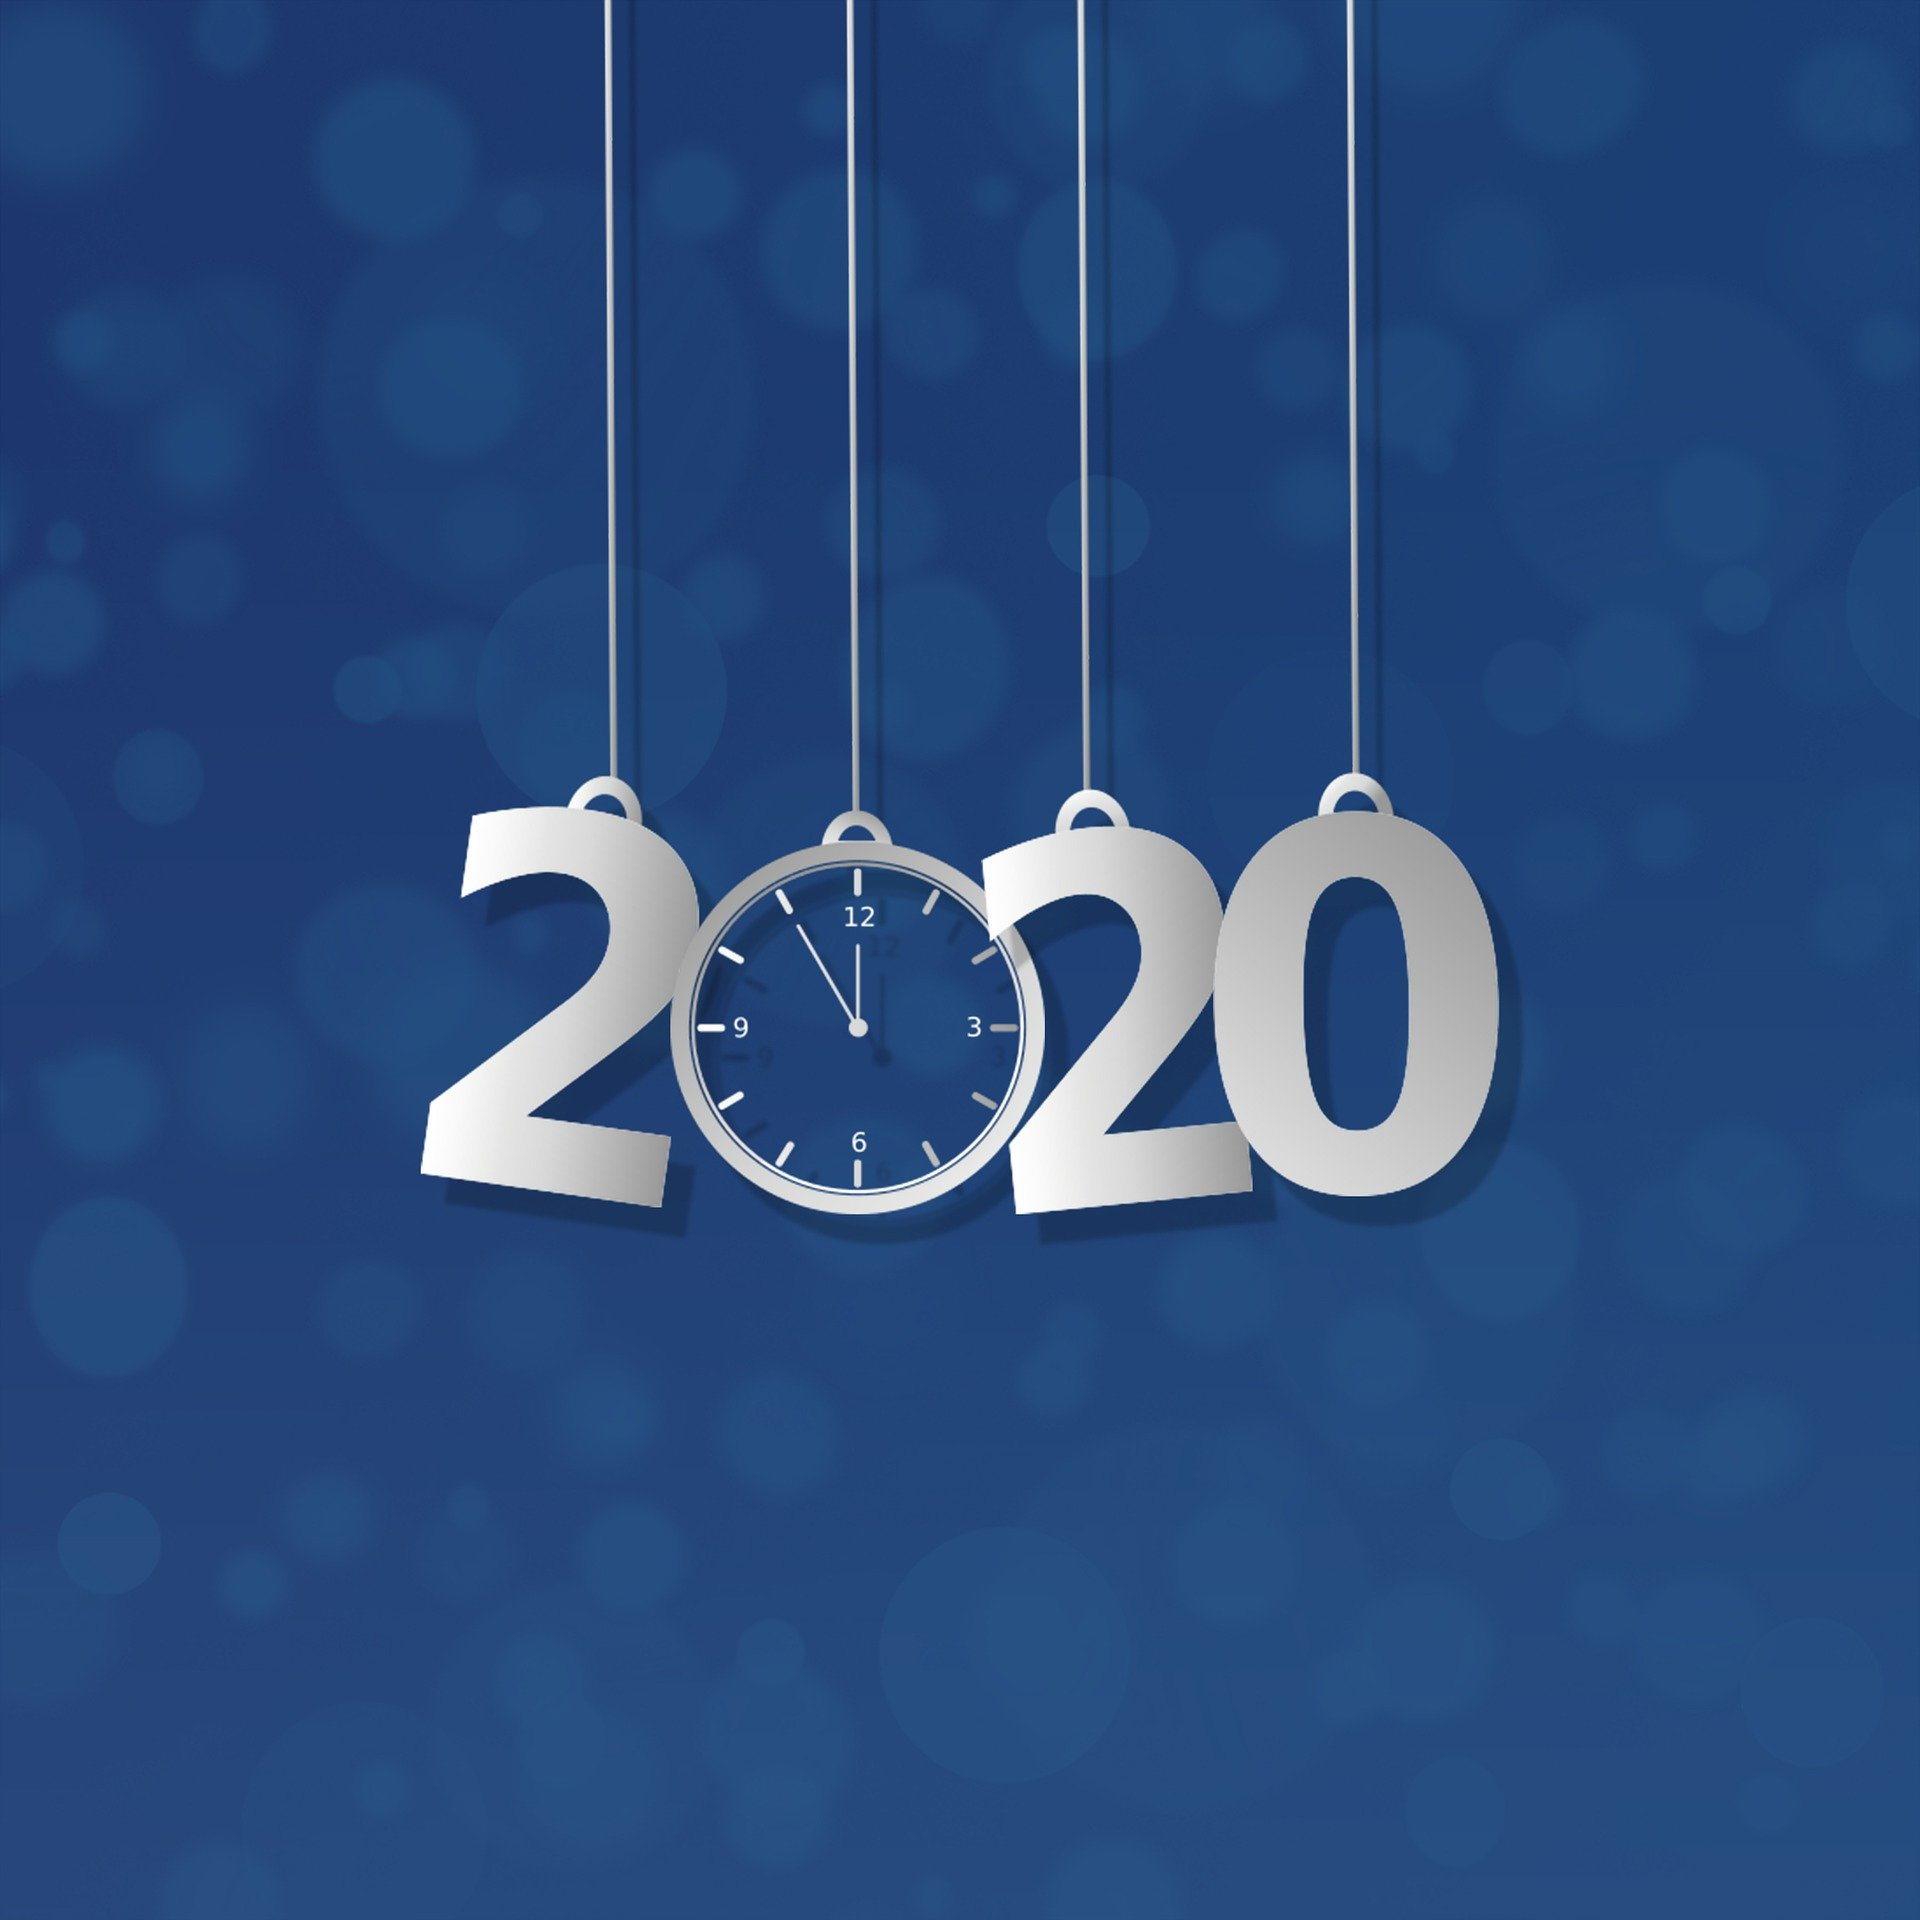 SEO Updates for 2020